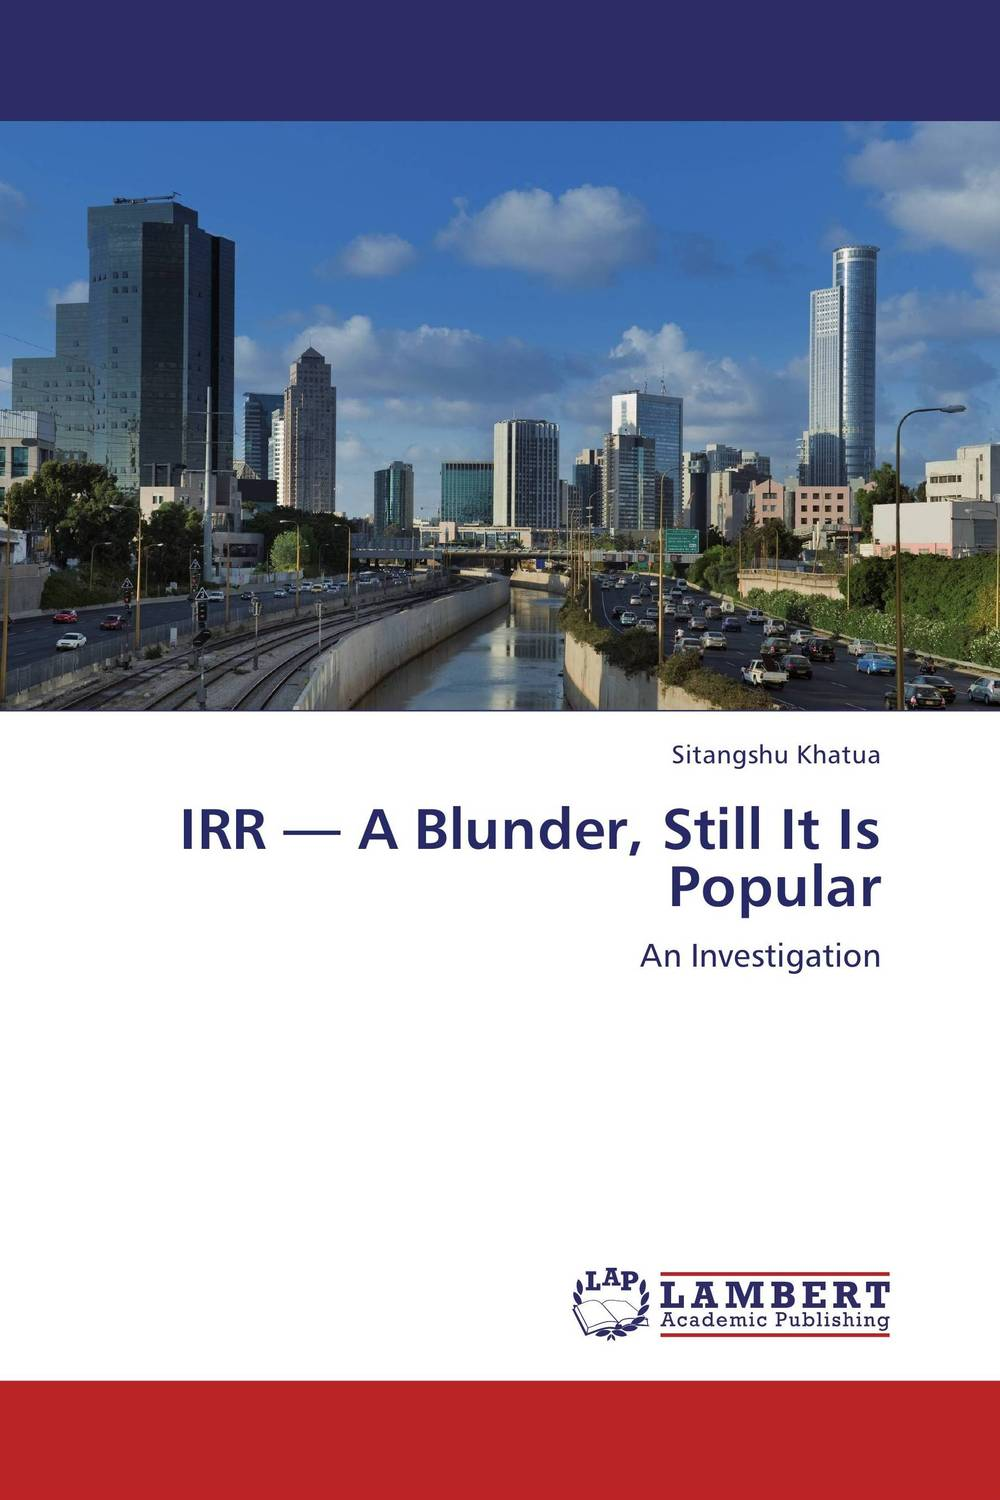 IRR — A Blunder, Still It Is Popular presidential nominee will address a gathering